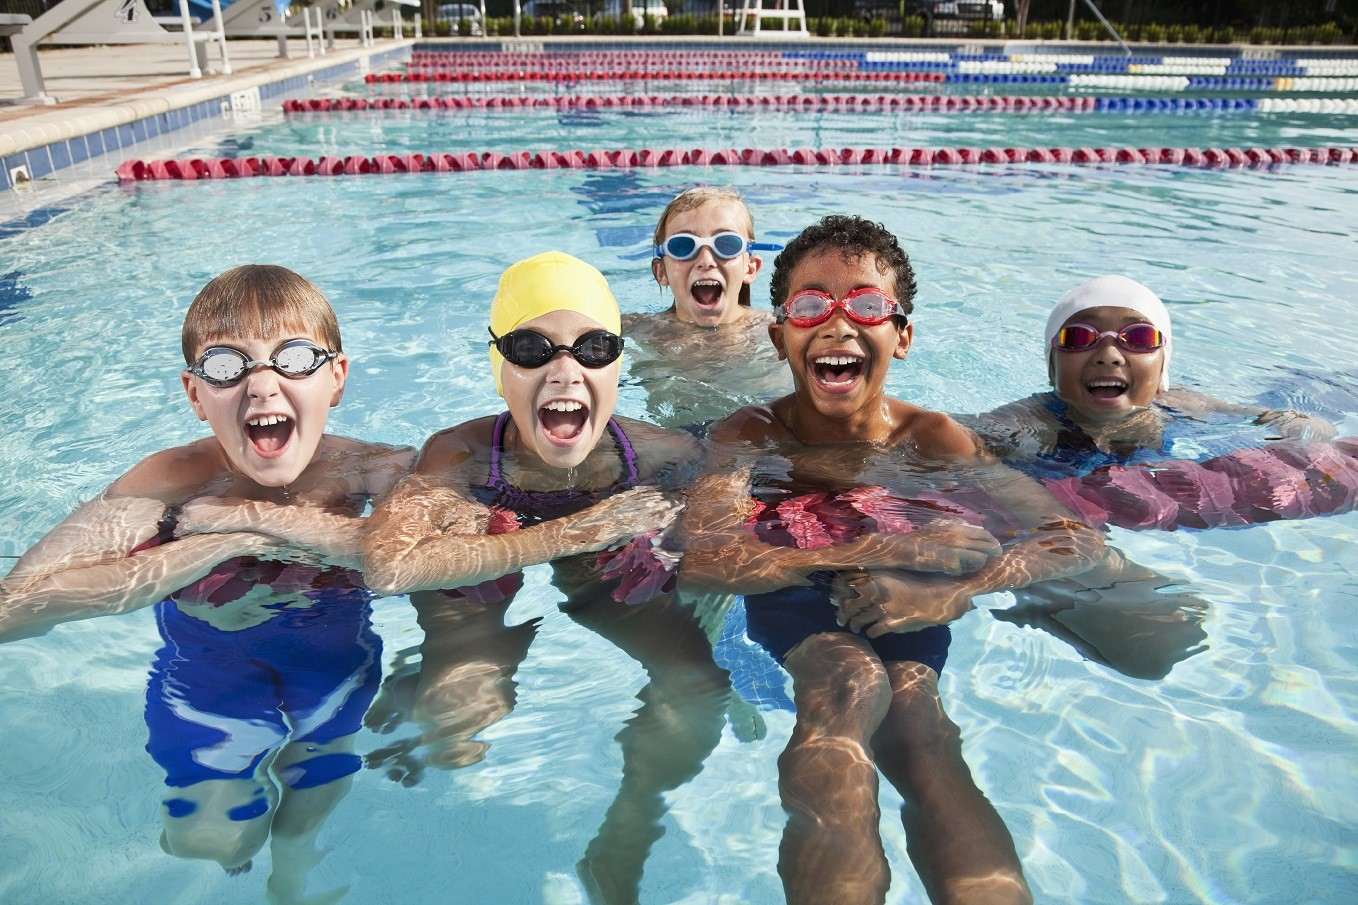 Group of children having fun in swimming pool. Ages 9 to 12 years.